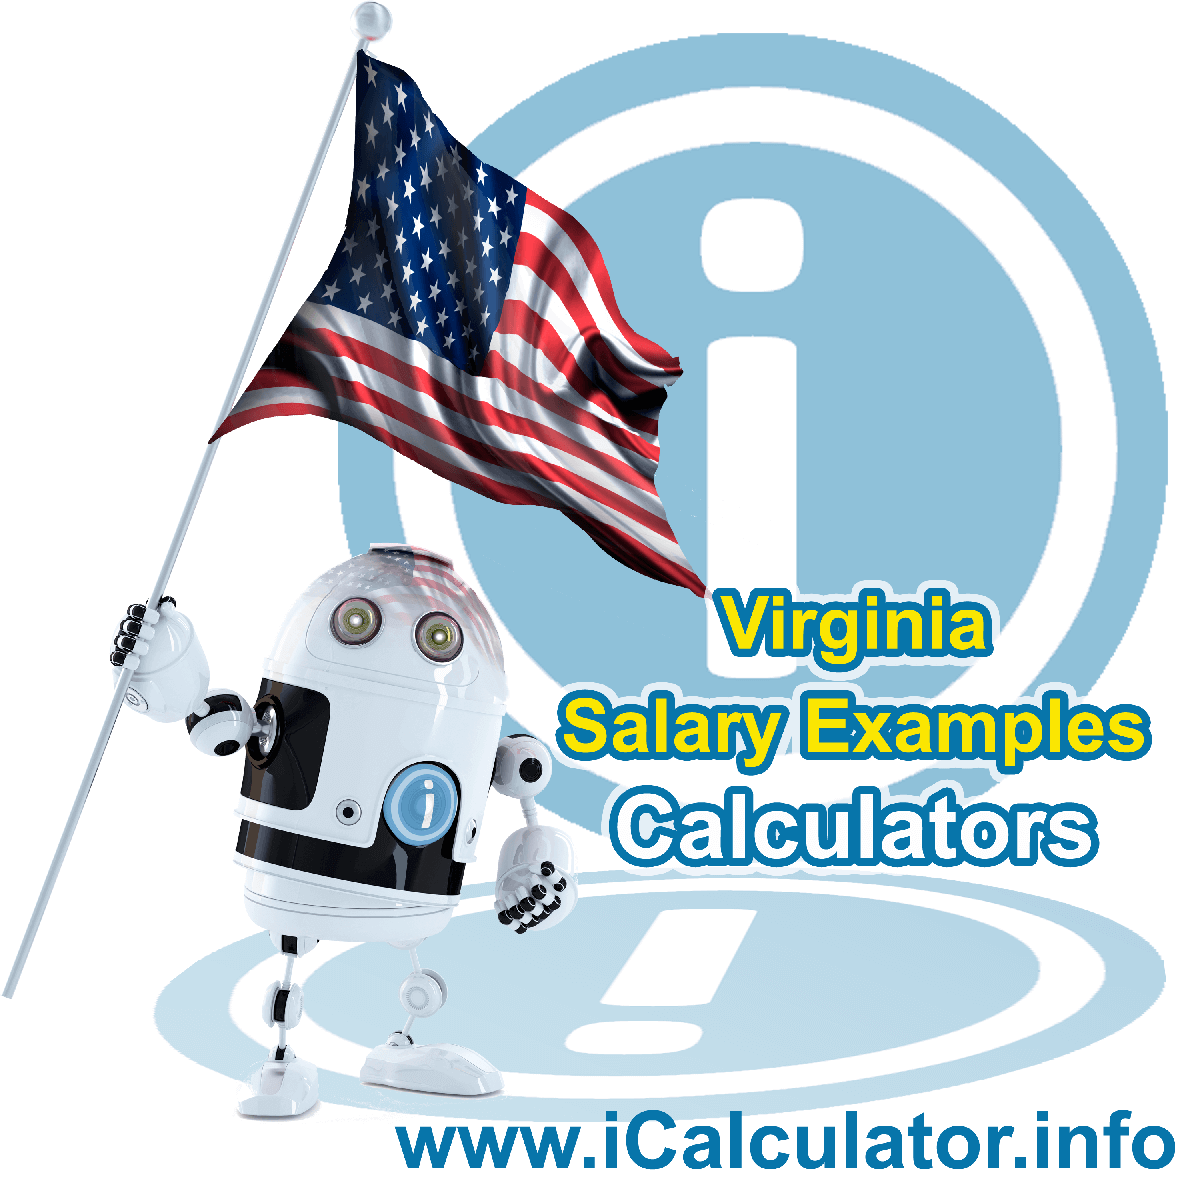 Virginia Salary Example for $100,000.00 in 2020 | iCalculator | $100,000.00 salary example for employee and employer paying Virginia State tincome taxes. Detailed salary after tax calculation including Virginia State Tax, Federal State Tax, Medicare Deductions, Social Security, Capital Gains and other income tax and salary deductions complete with supporting Virginia state tax tables